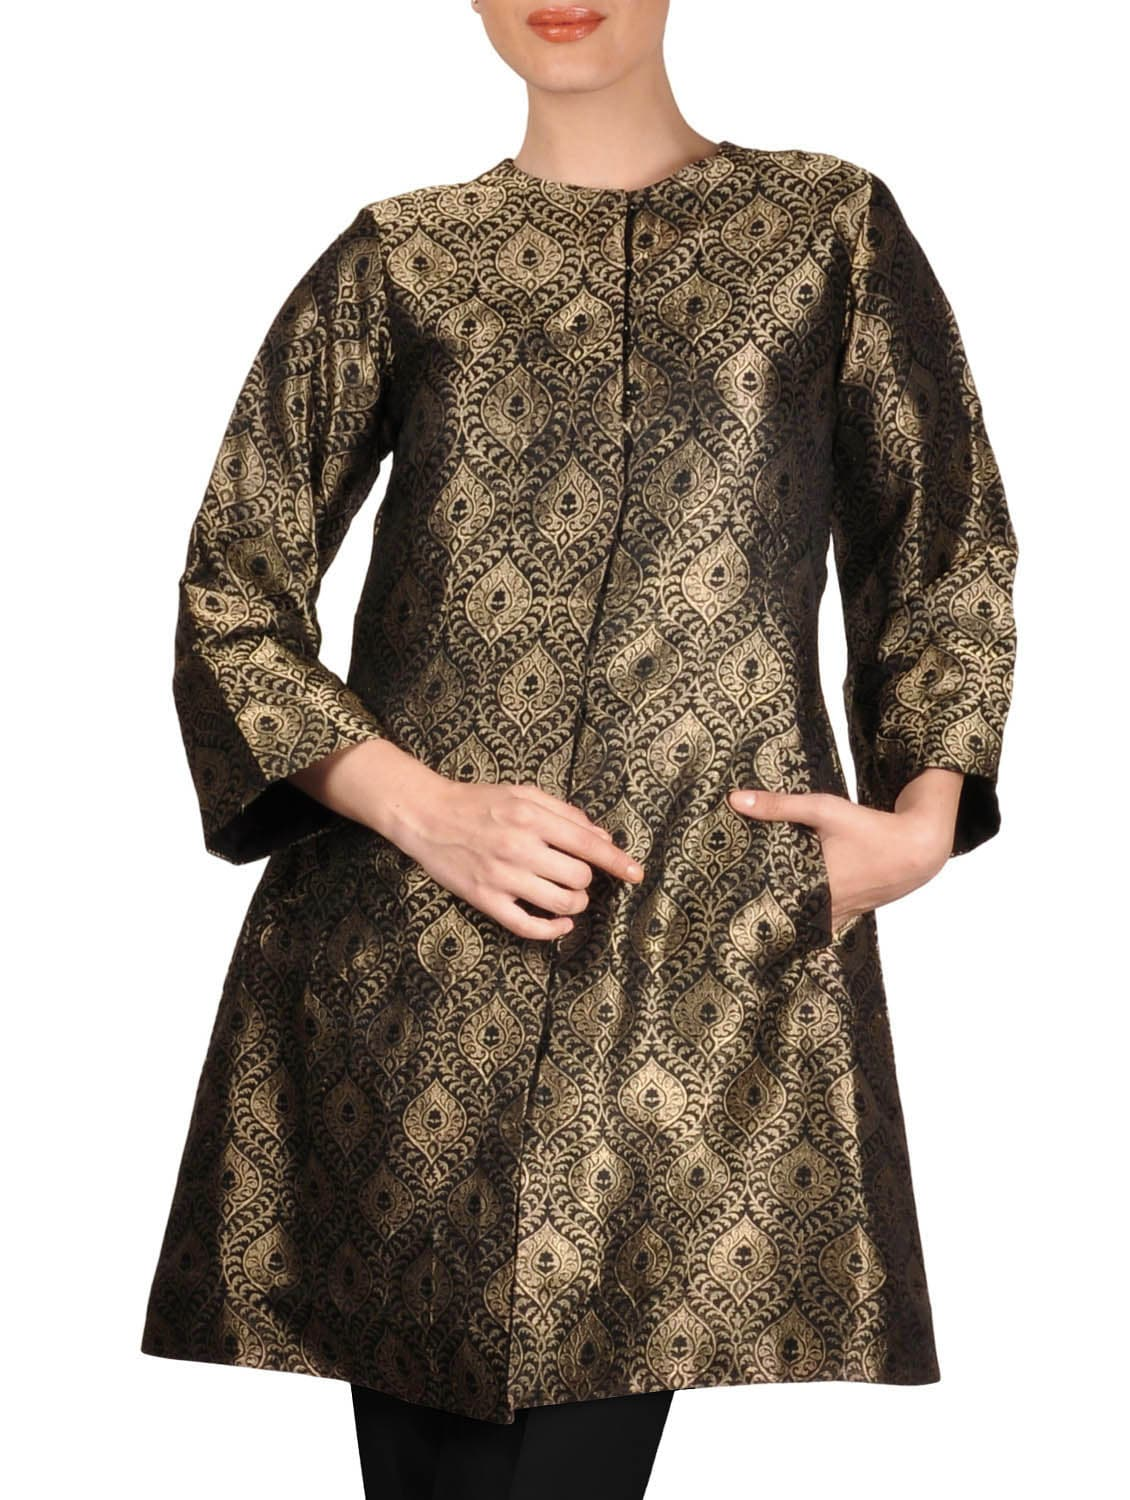 Buy online Black And Gold Pure Brocade Silk Jacket from jackets and blazers  and coats for Women by Talkingthreads for ₹11900 at 0% off   2021  Limeroad.com